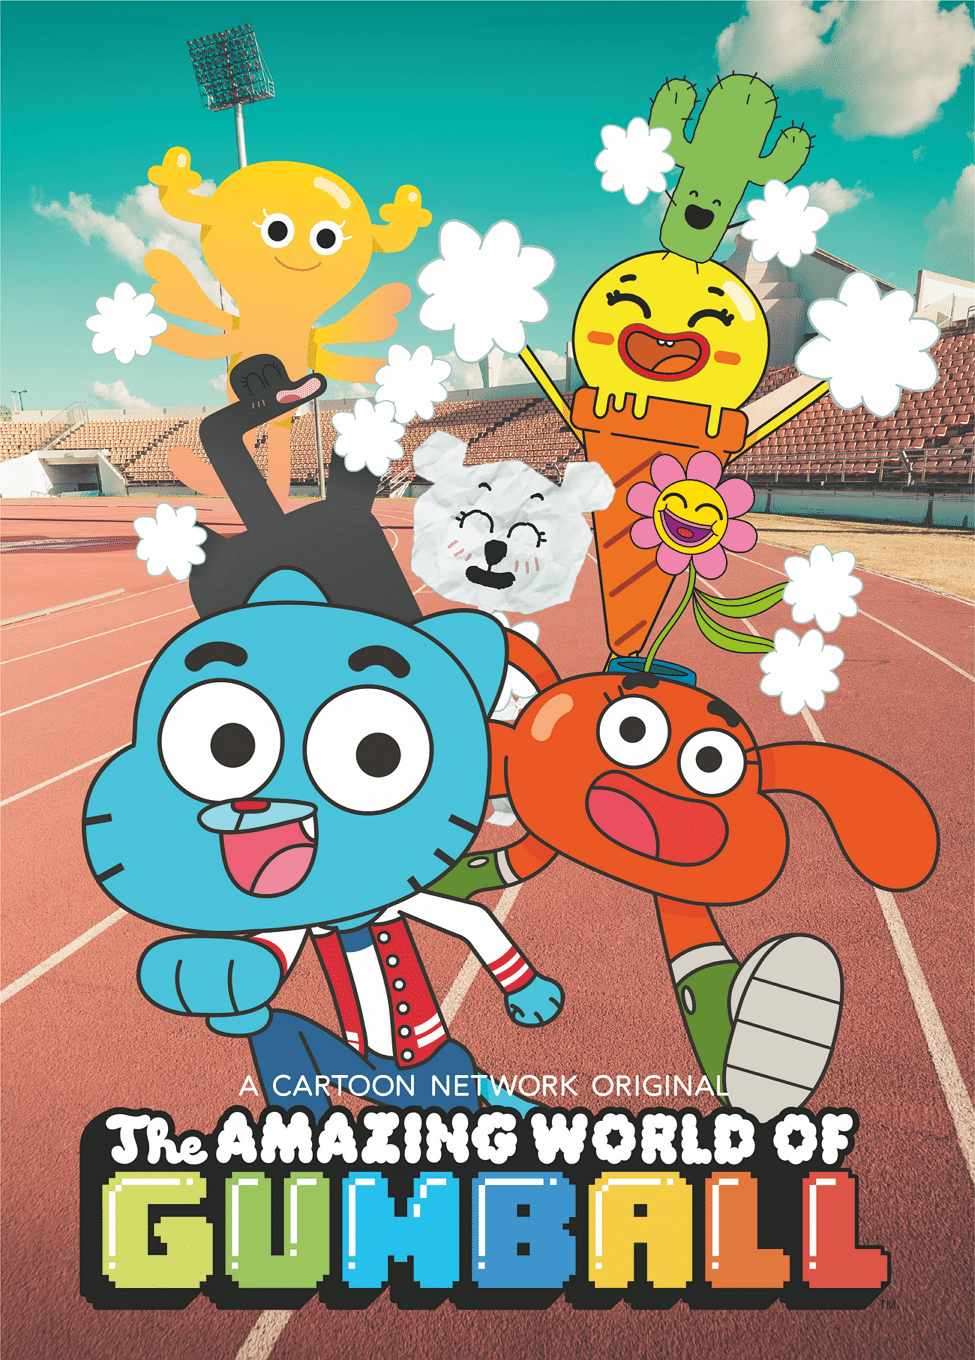 The Amazing World Of Gumball Wins Three 2018 British Animation Awards